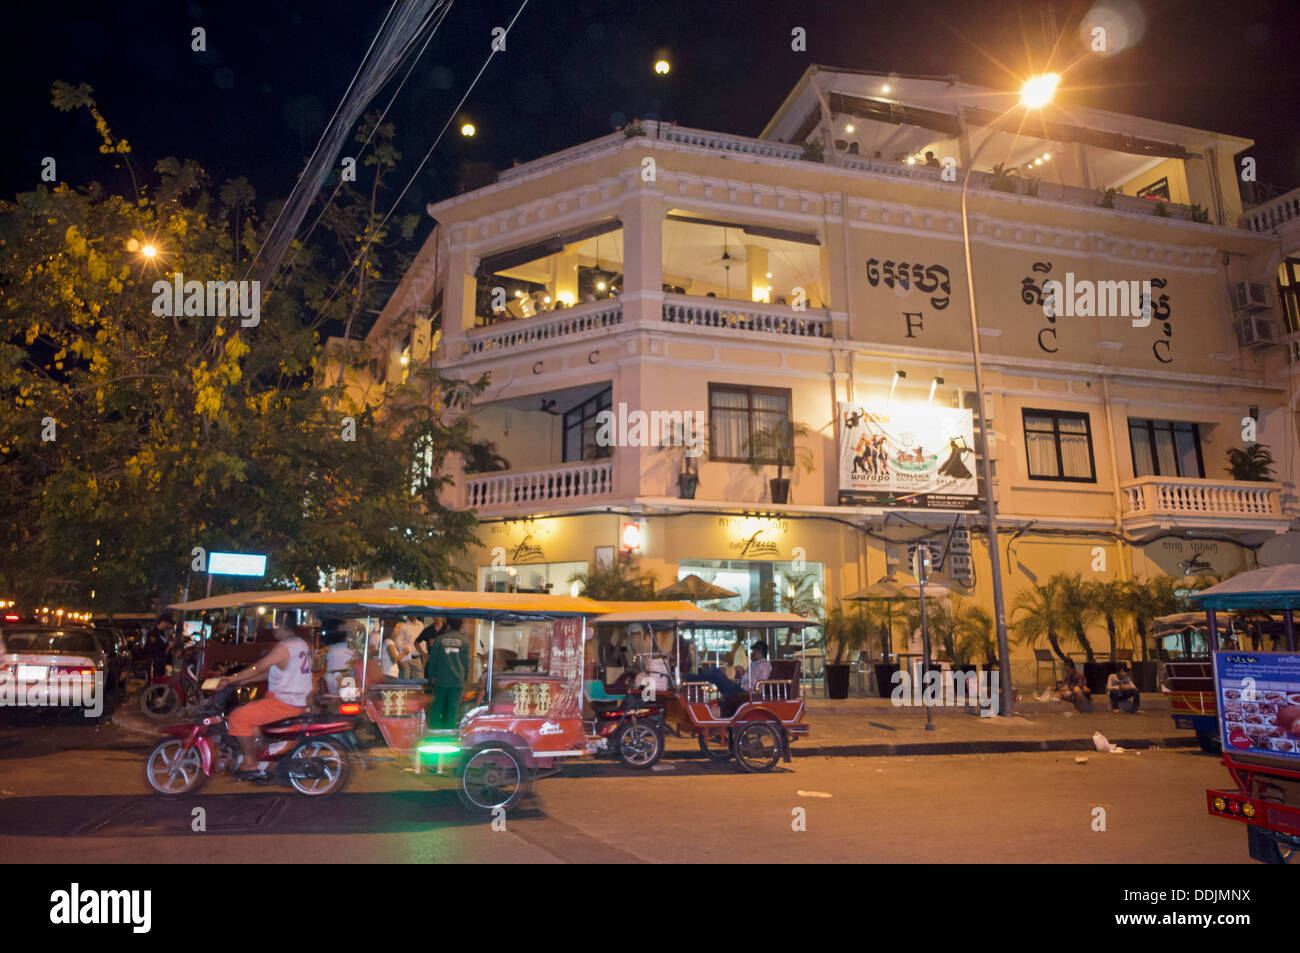 FCC, Foreign Correspondent Club at night in Phnom Penh , Cambodia - Stock Image